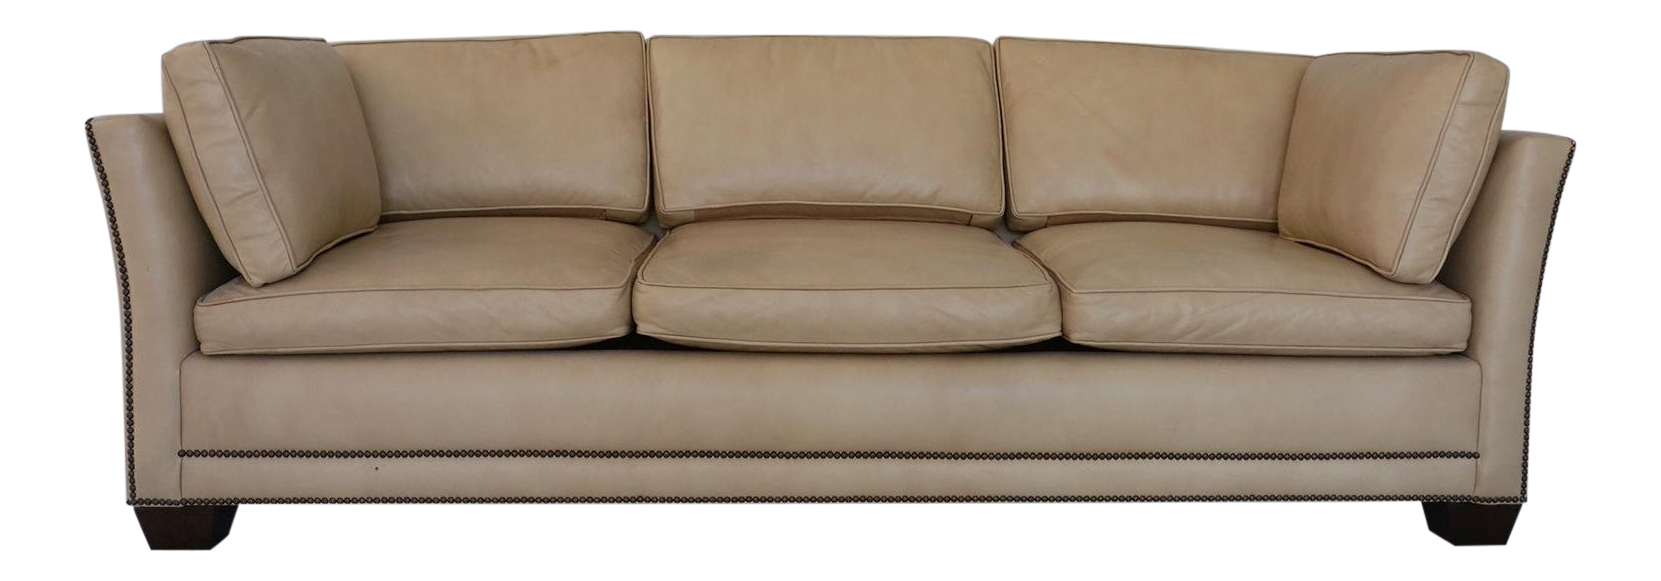 Traditional Light Camel Leather Sleeper Sofa